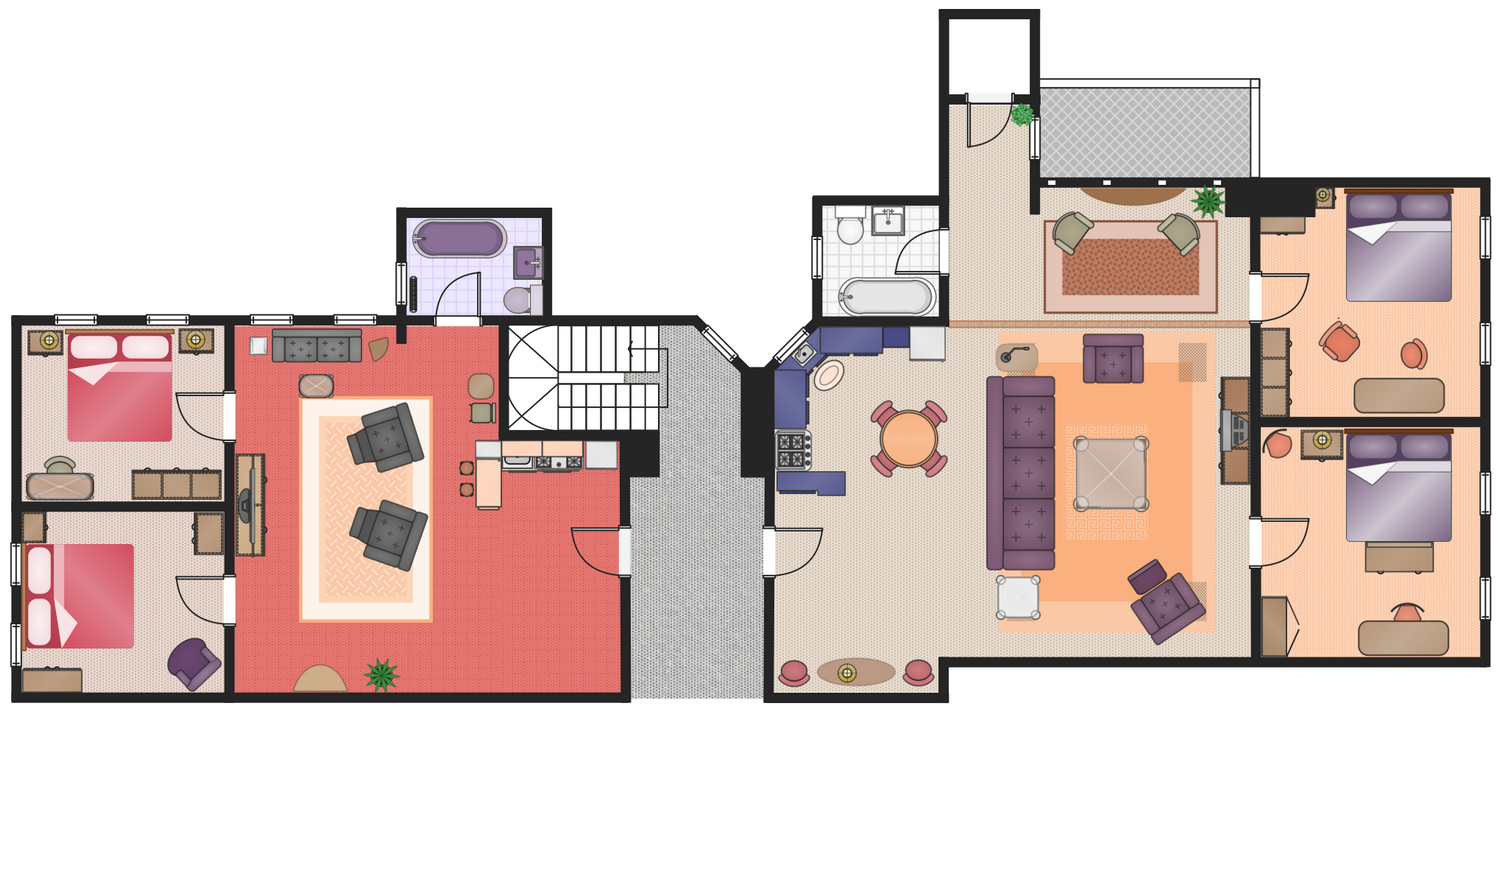 Friends Tv Show Appartments This Example Was Created In Conceptdraw Pro Using The Libraries From The Floor Plans Floor Plan Symbols Floor Plans How To Plan